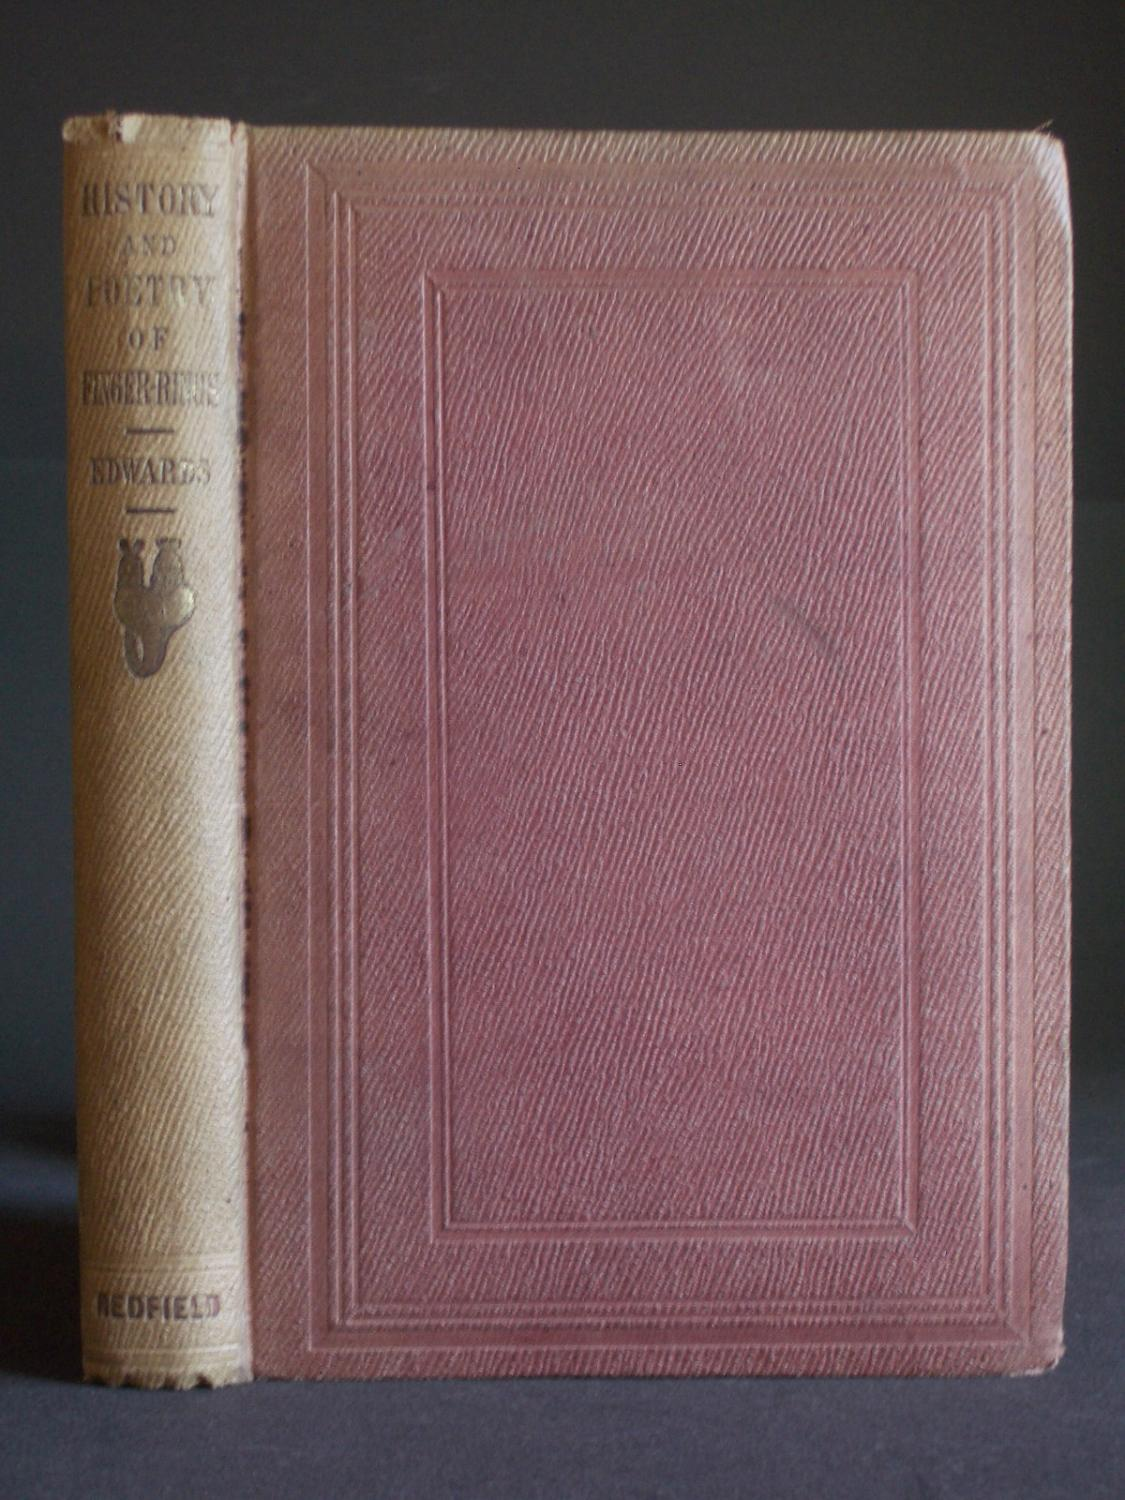 The History and Poetry of Finger-Rings Edwards, Charles Good Hardcover